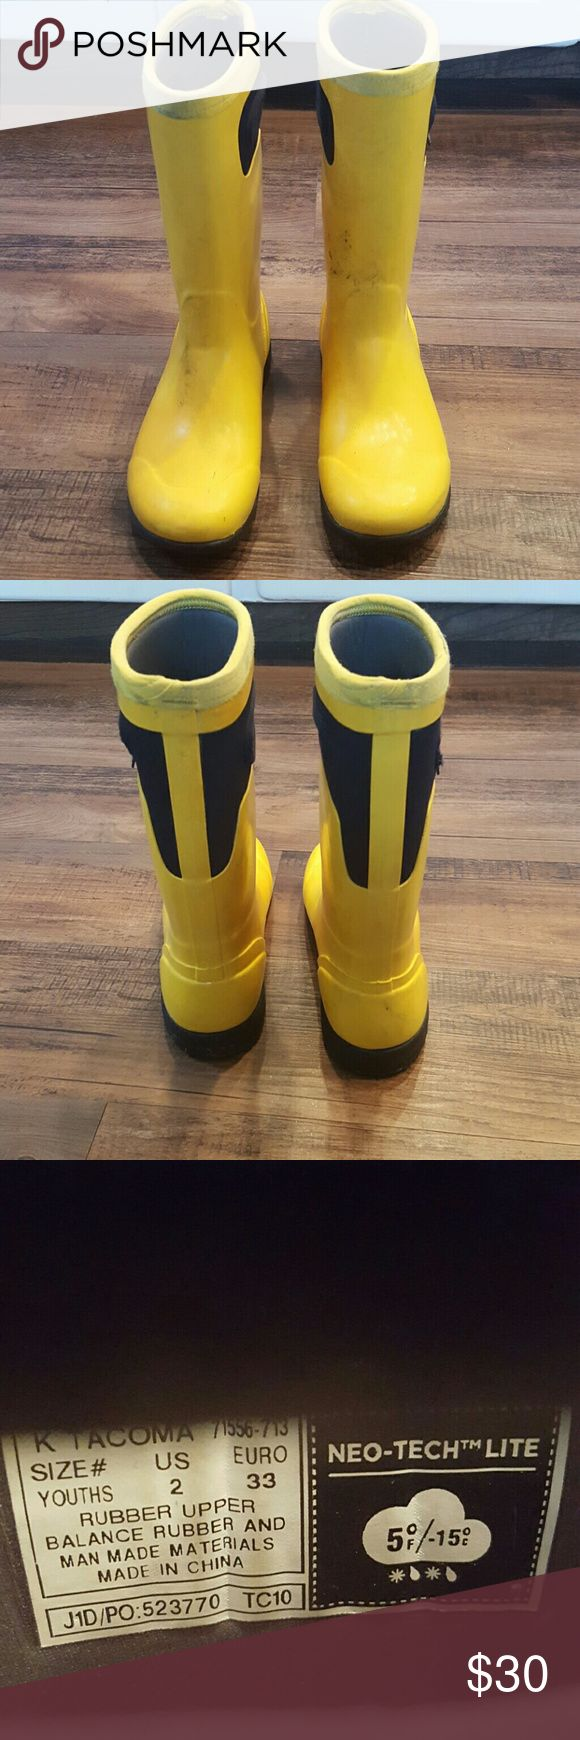 Bogs boots Yellow neo tech lite waterproof insulated Bogs with easy to pull on handles. These are preloved and do show some fading but have lots of life left. Works for boy or girl. Youth size 2 Bogs Shoes Boots